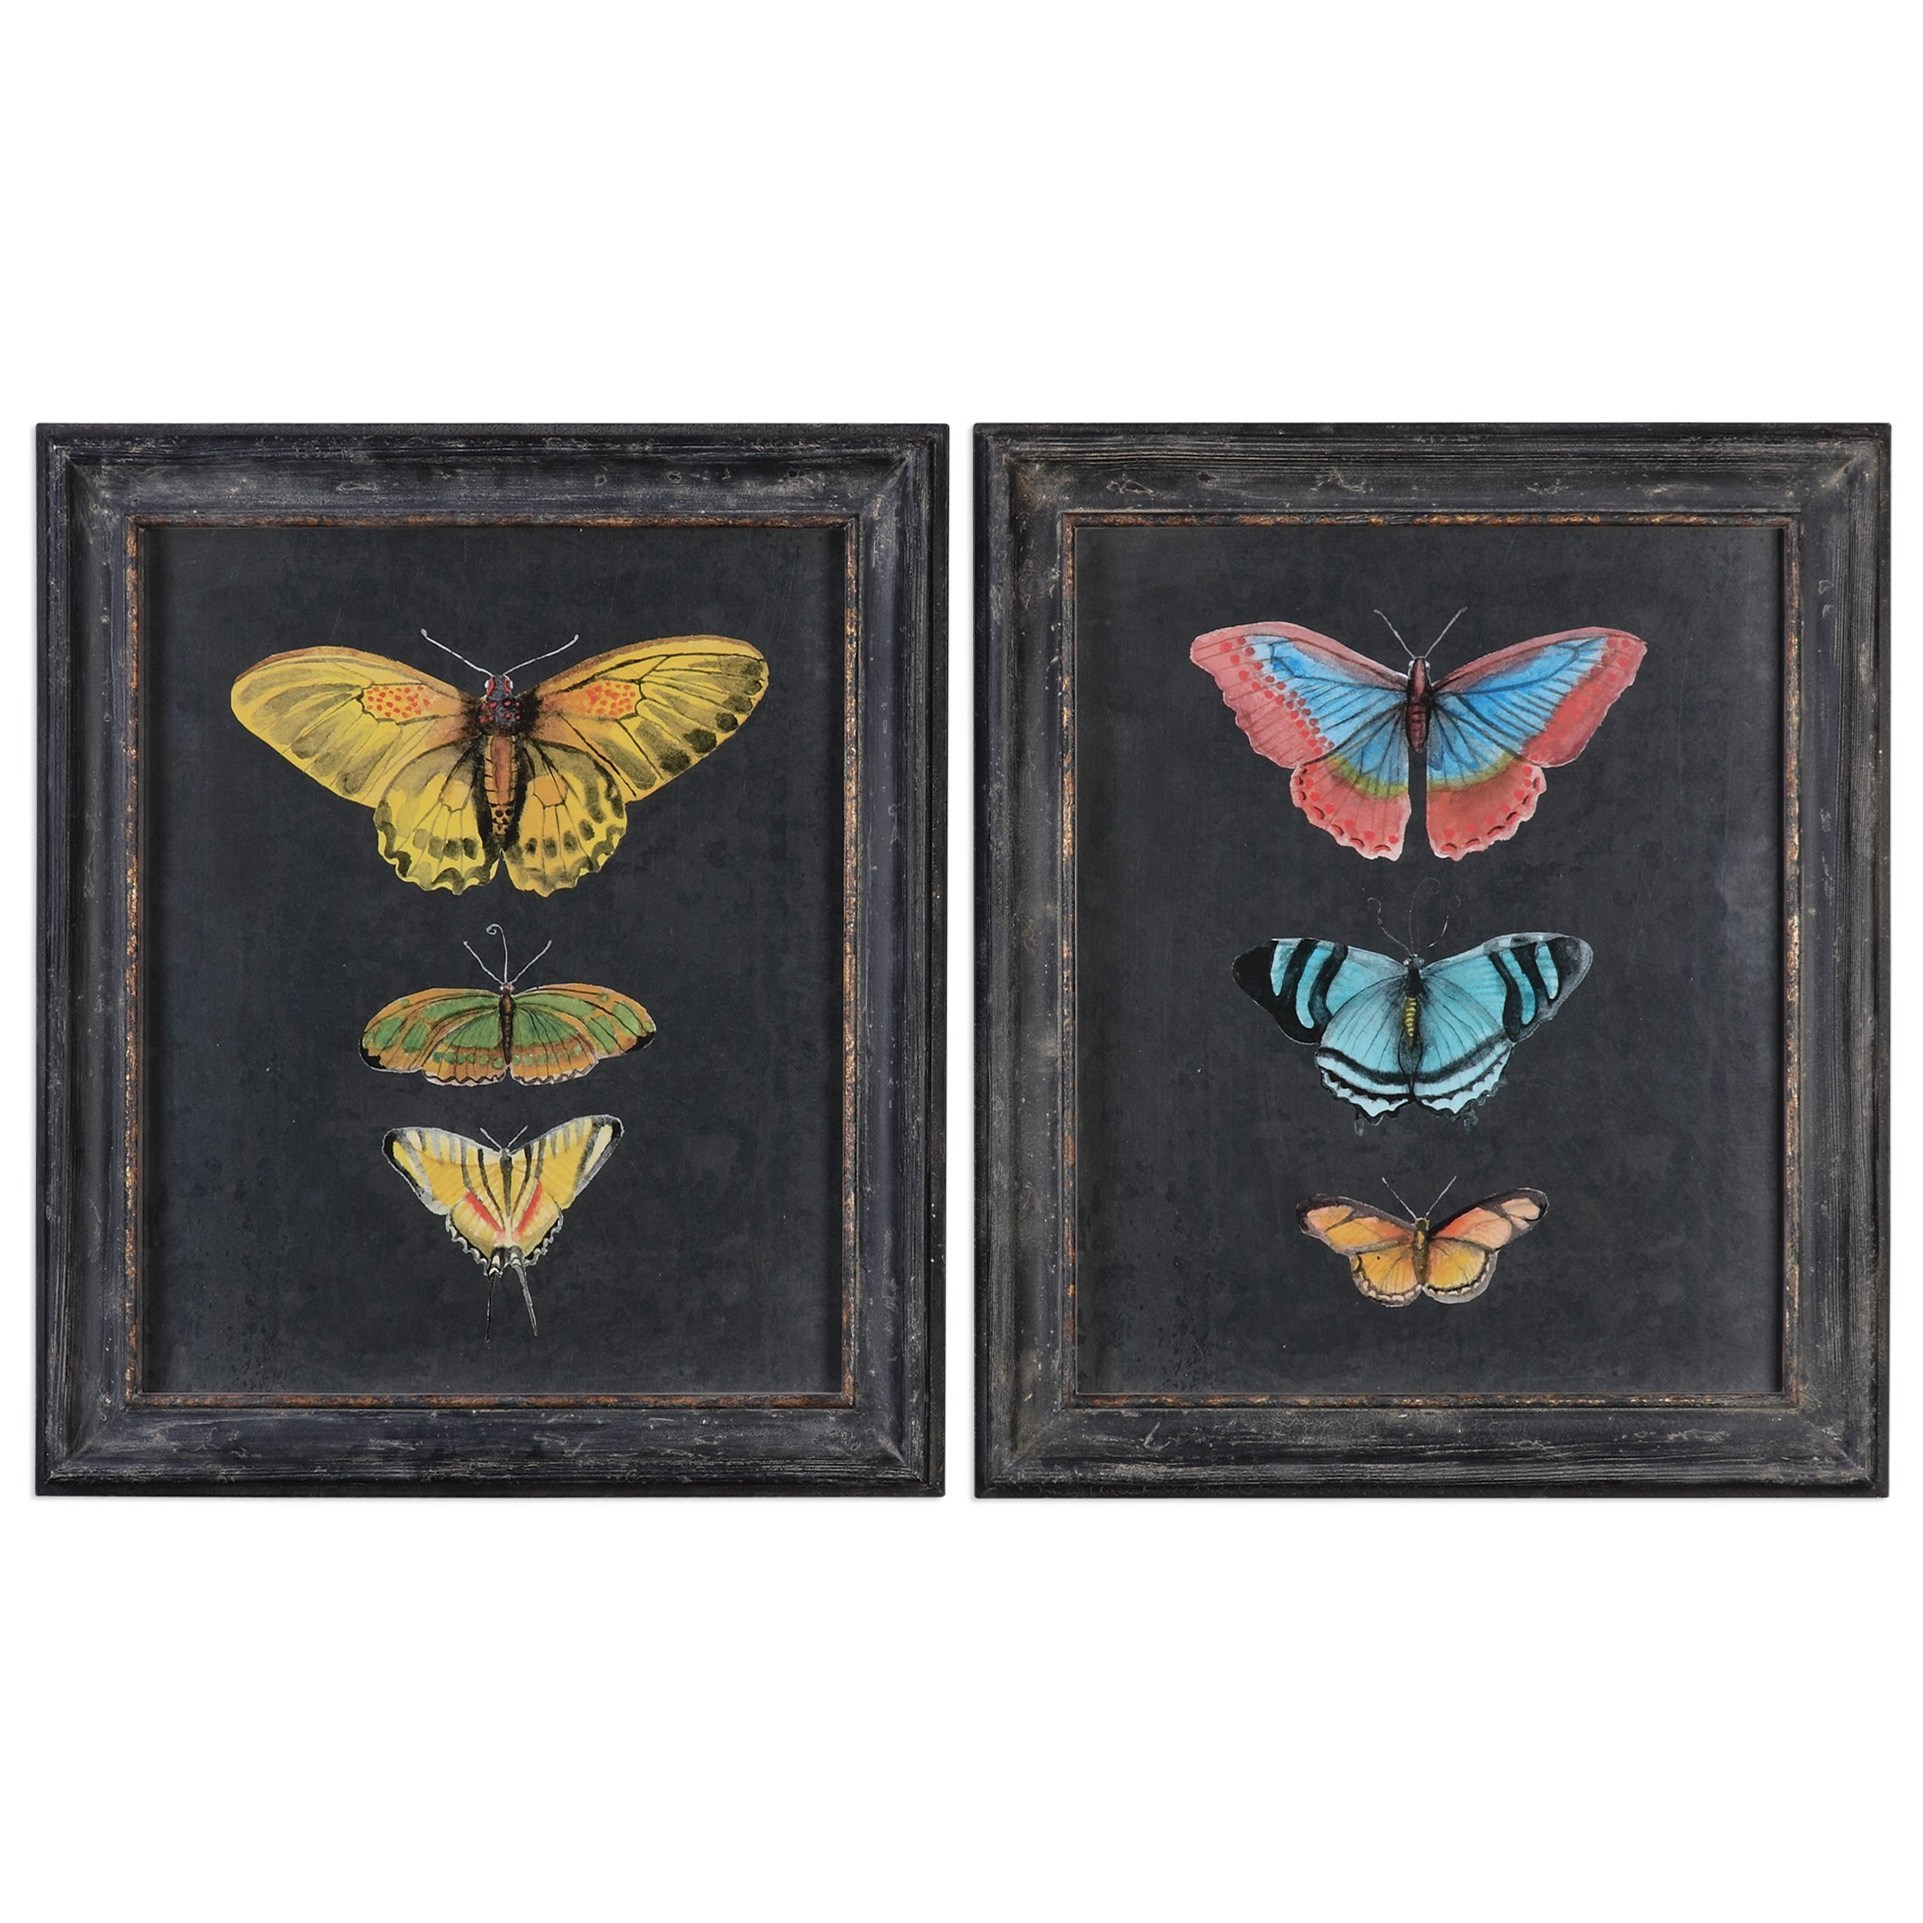 Uttermost Art Butterflies On Slate (Set of 2) - Item Number: 56065